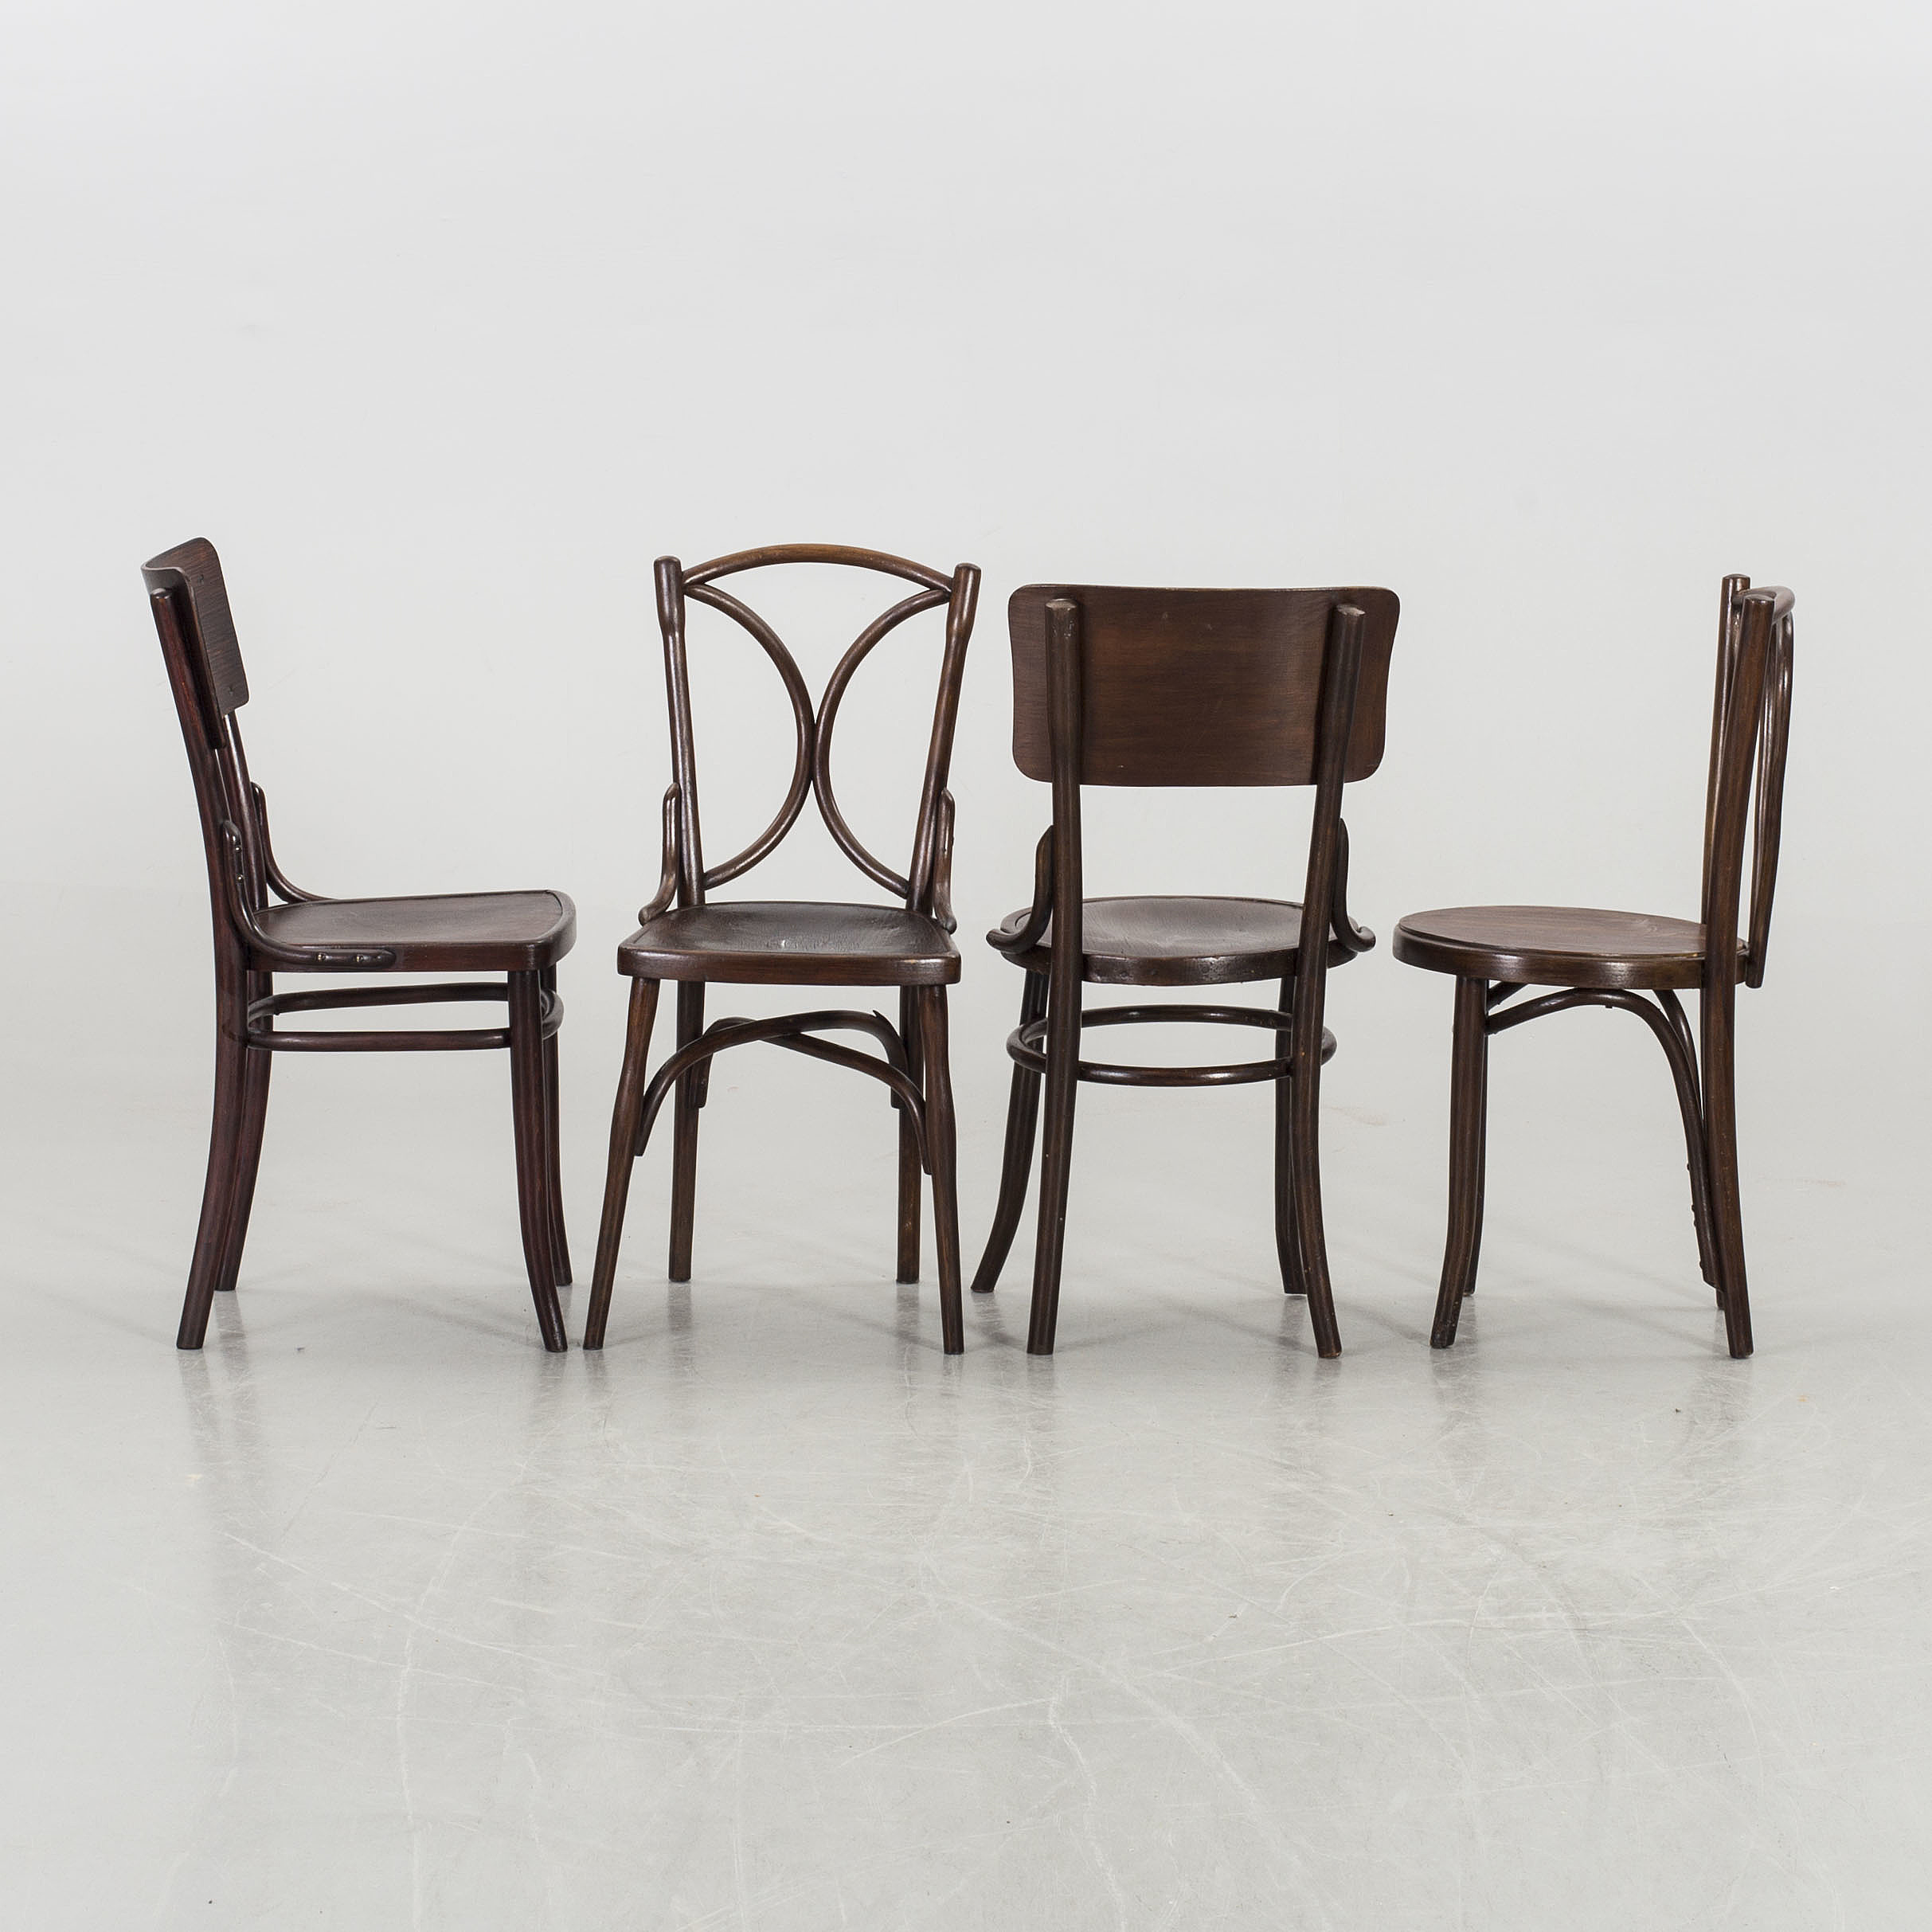 Ten Thonet chairs, first half of the 20th century  - Bukowskis